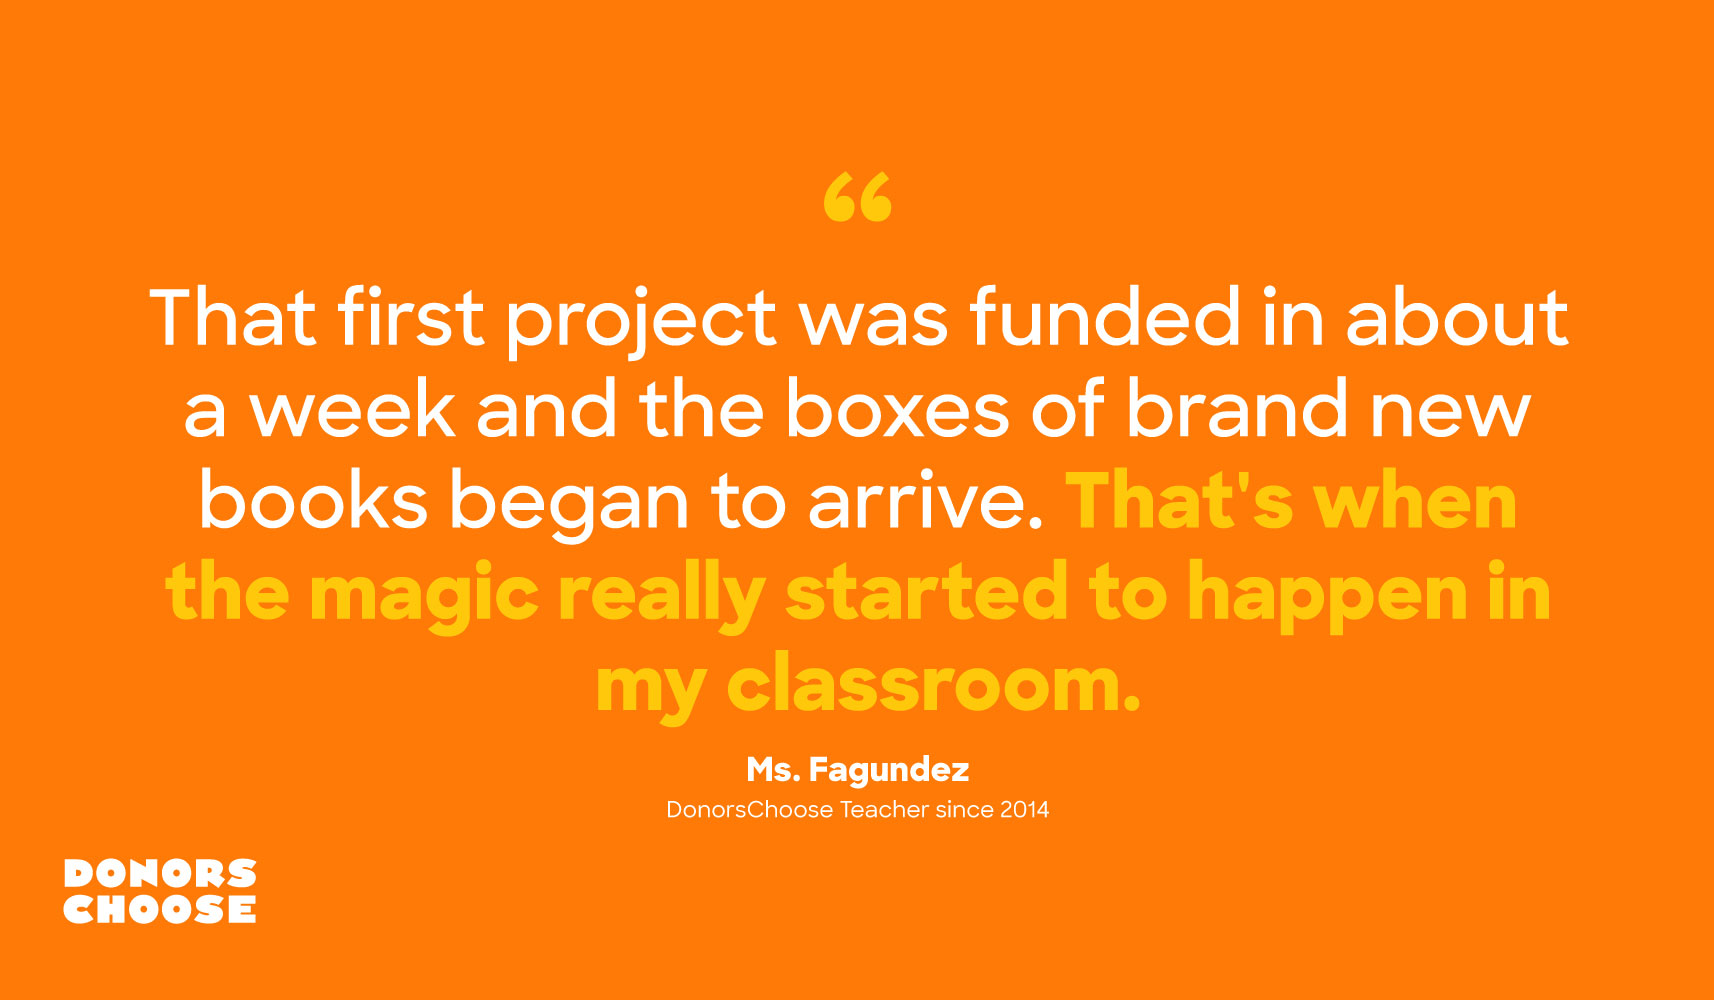 """The first project was funded in about a week and the boxes of brand new books began to arrive. That's when the magic really started to happen in my classroom."" —Ms. Fagundez, DonorsChoose Teacher since 2014"